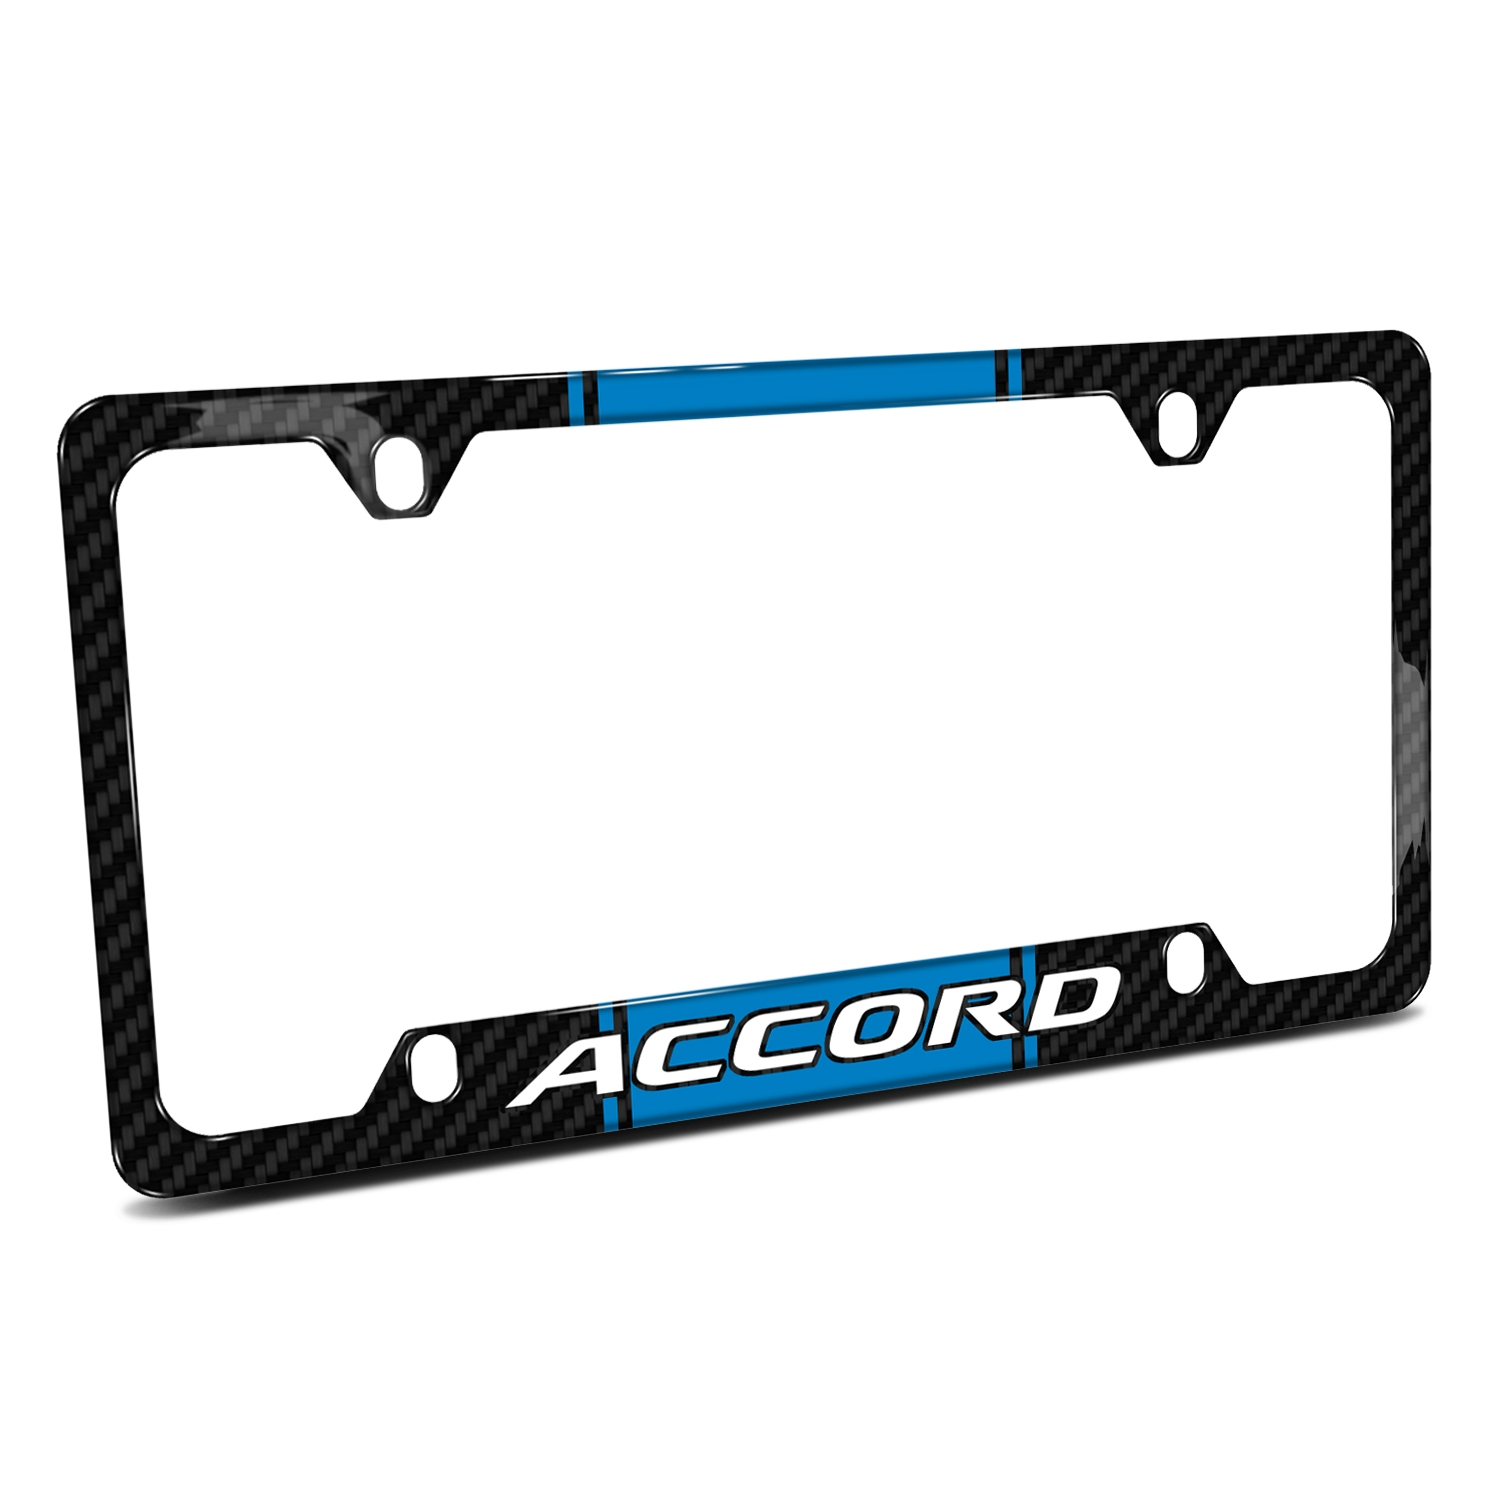 Honda Accord Blue Racing Stripe Black Real Carbon Fiber 50 States License Plate Frame